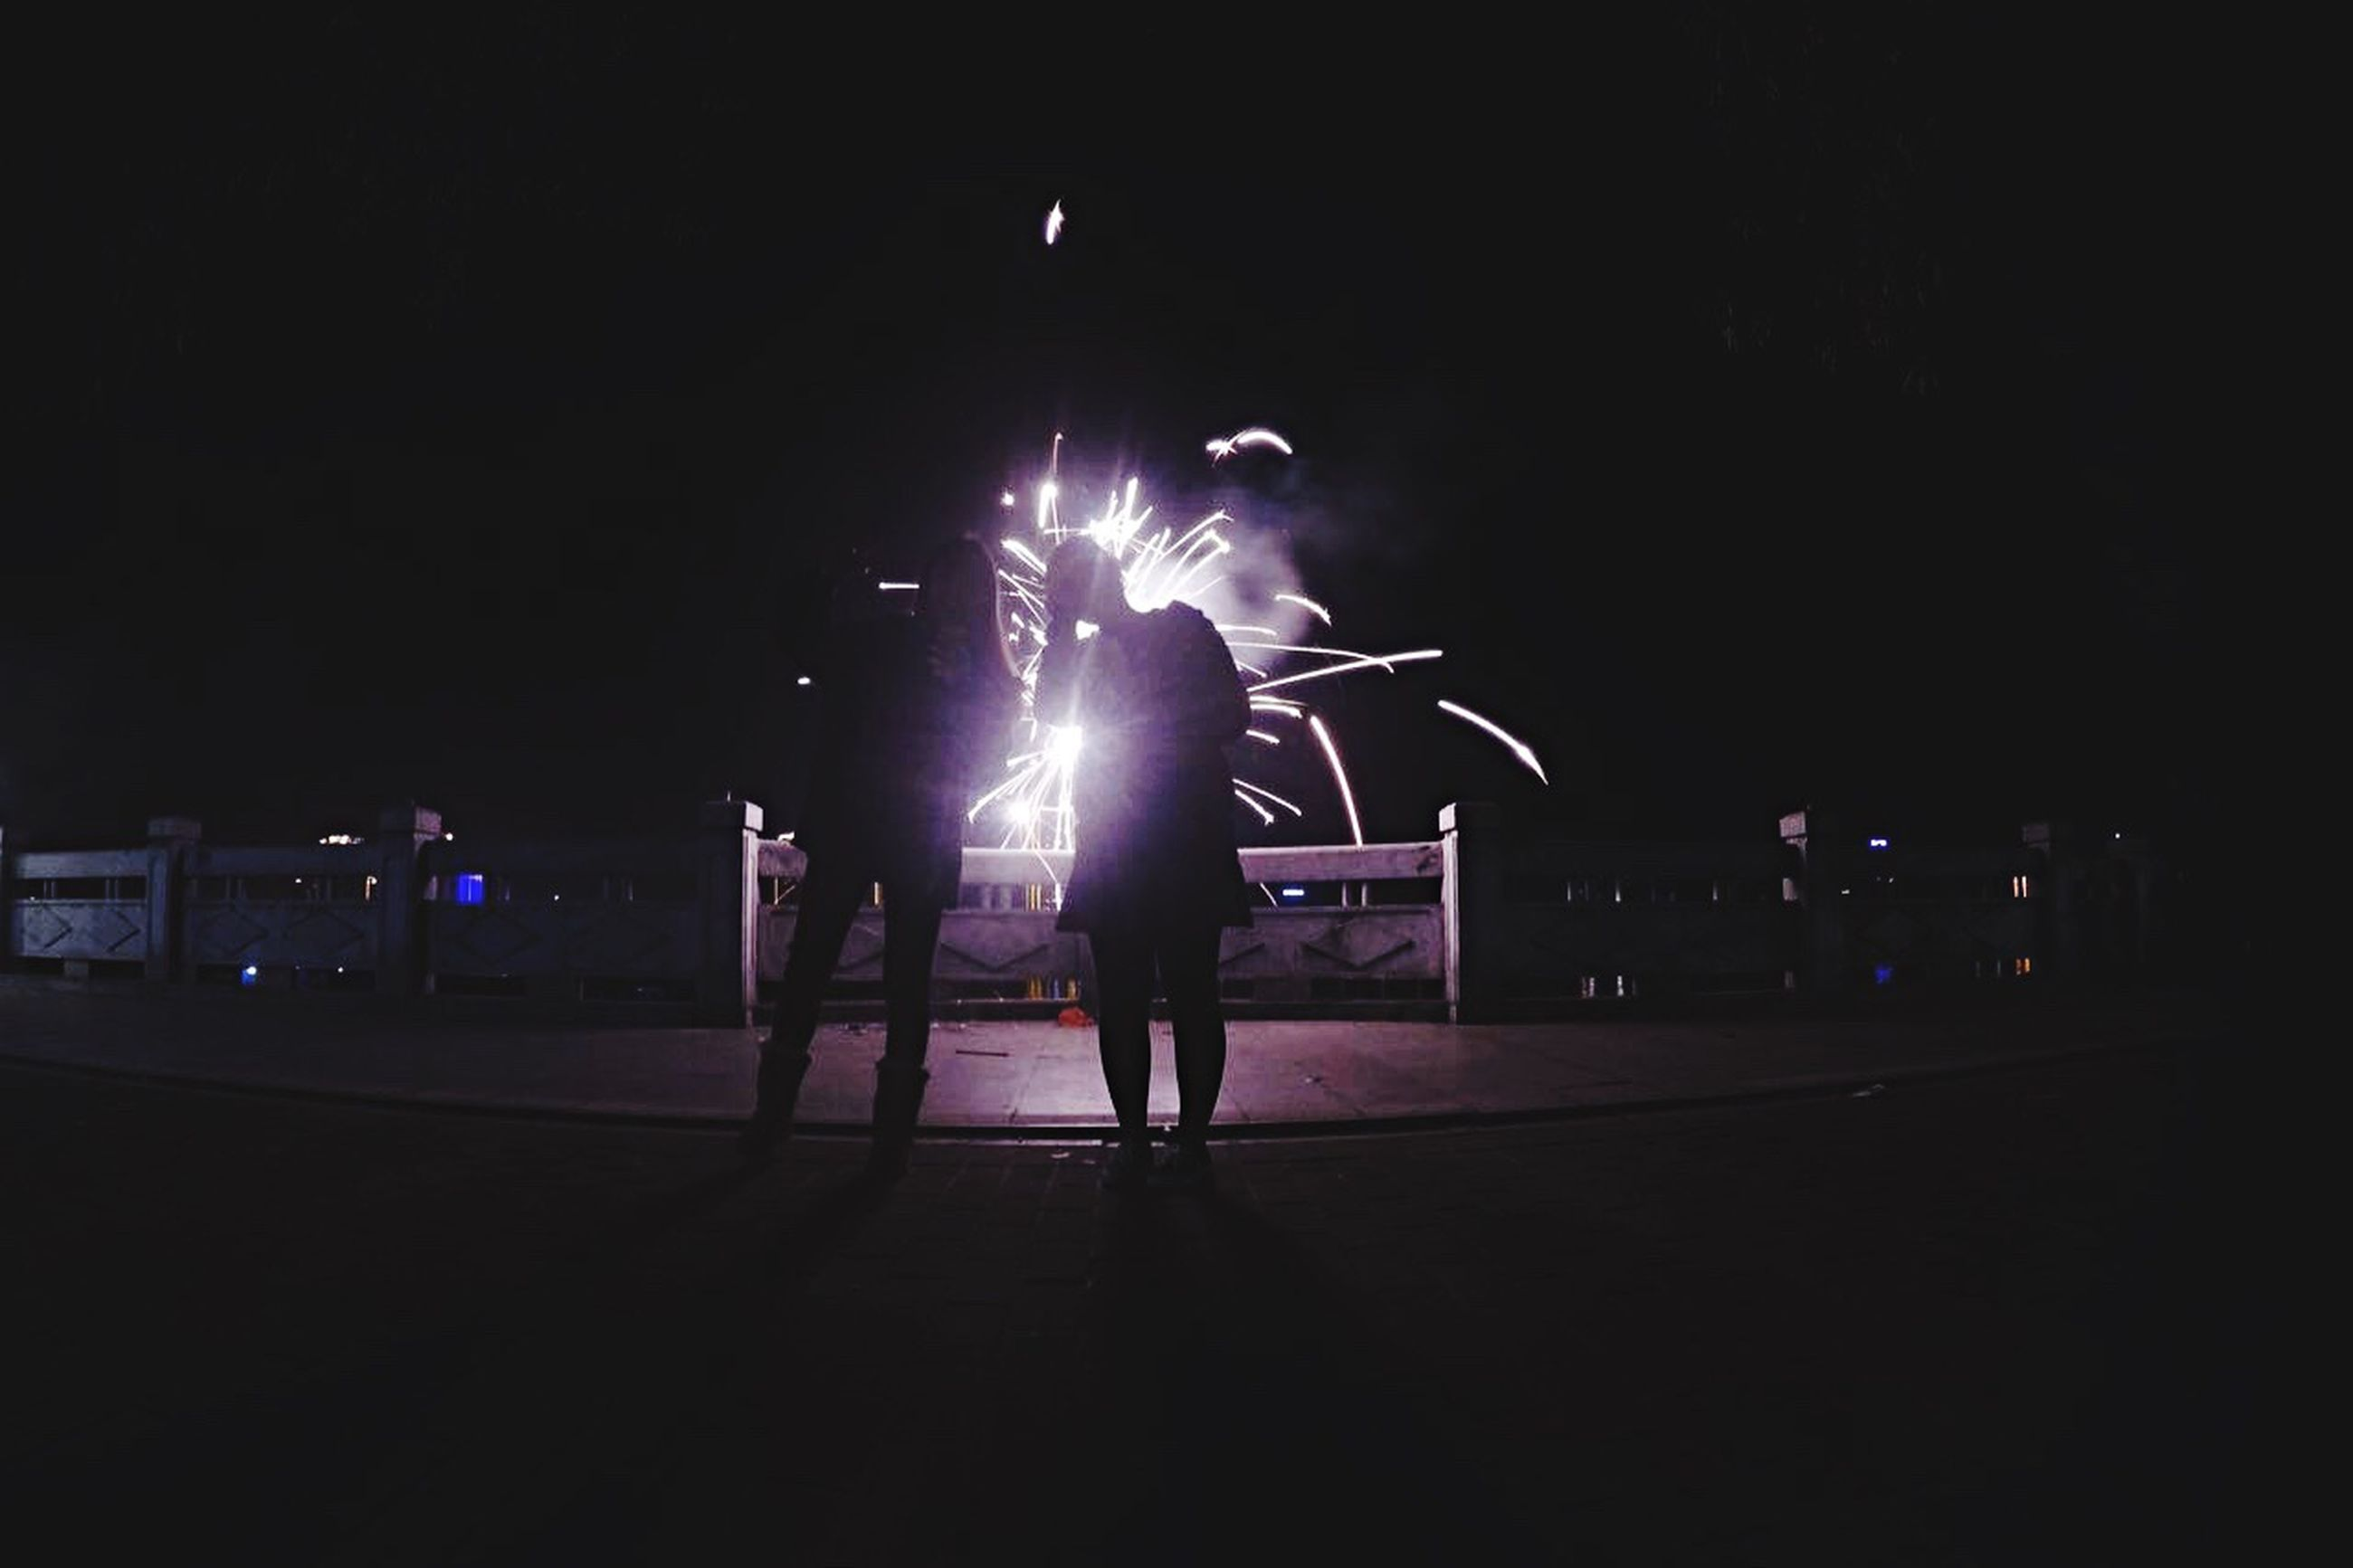 night, illuminated, lifestyles, leisure activity, men, arts culture and entertainment, full length, performance, motion, glowing, light - natural phenomenon, lighting equipment, enjoyment, standing, long exposure, togetherness, rear view, person, dark